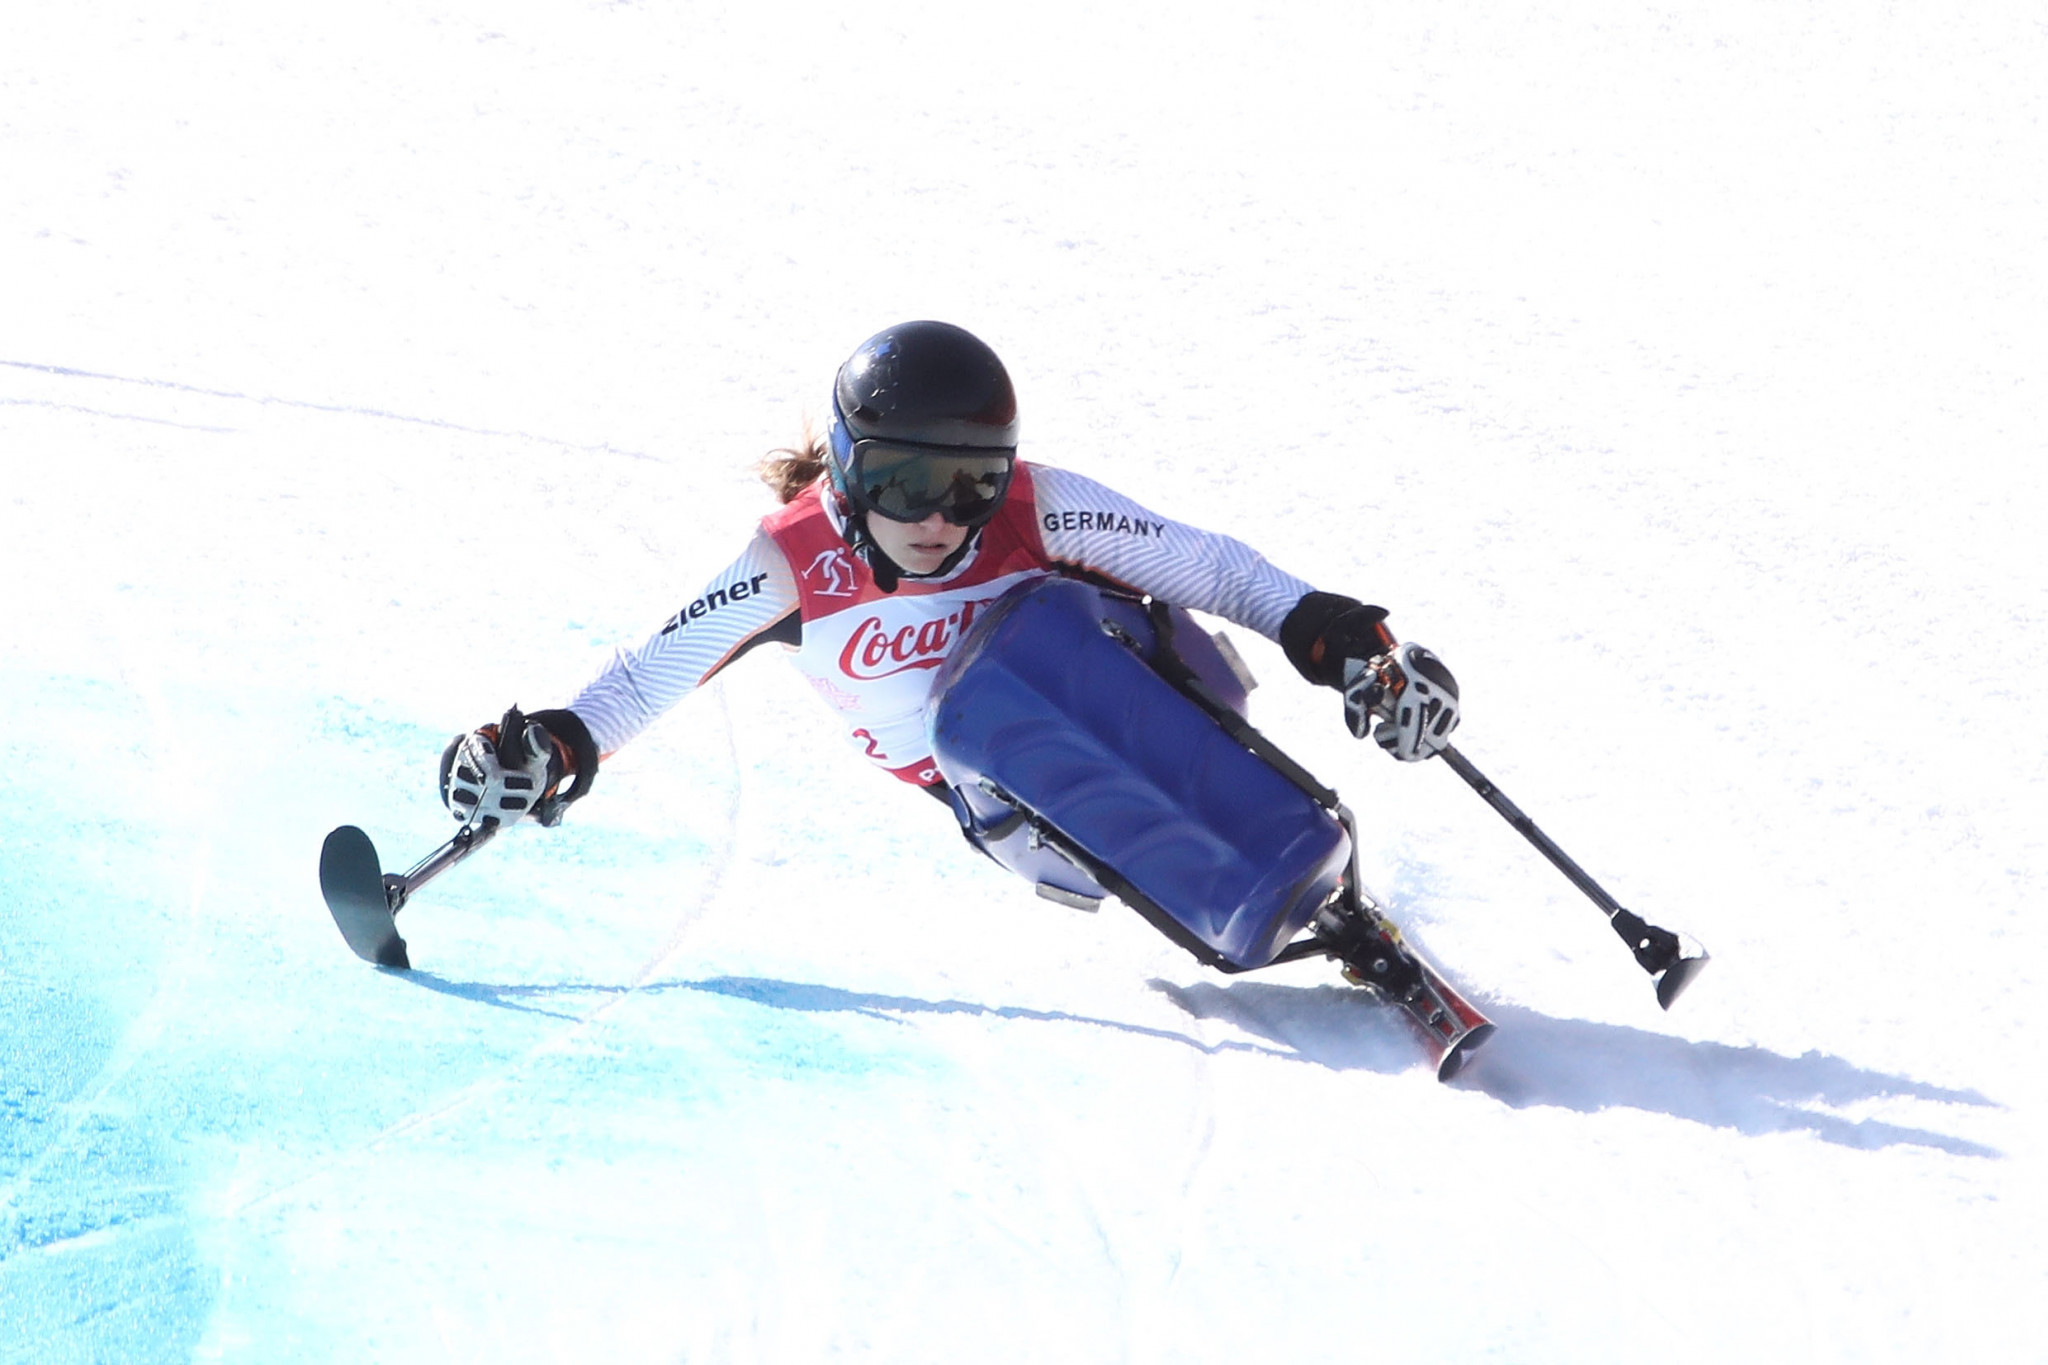 Seven-time Paralympic champion expresses fears over Beijing 2022 snow